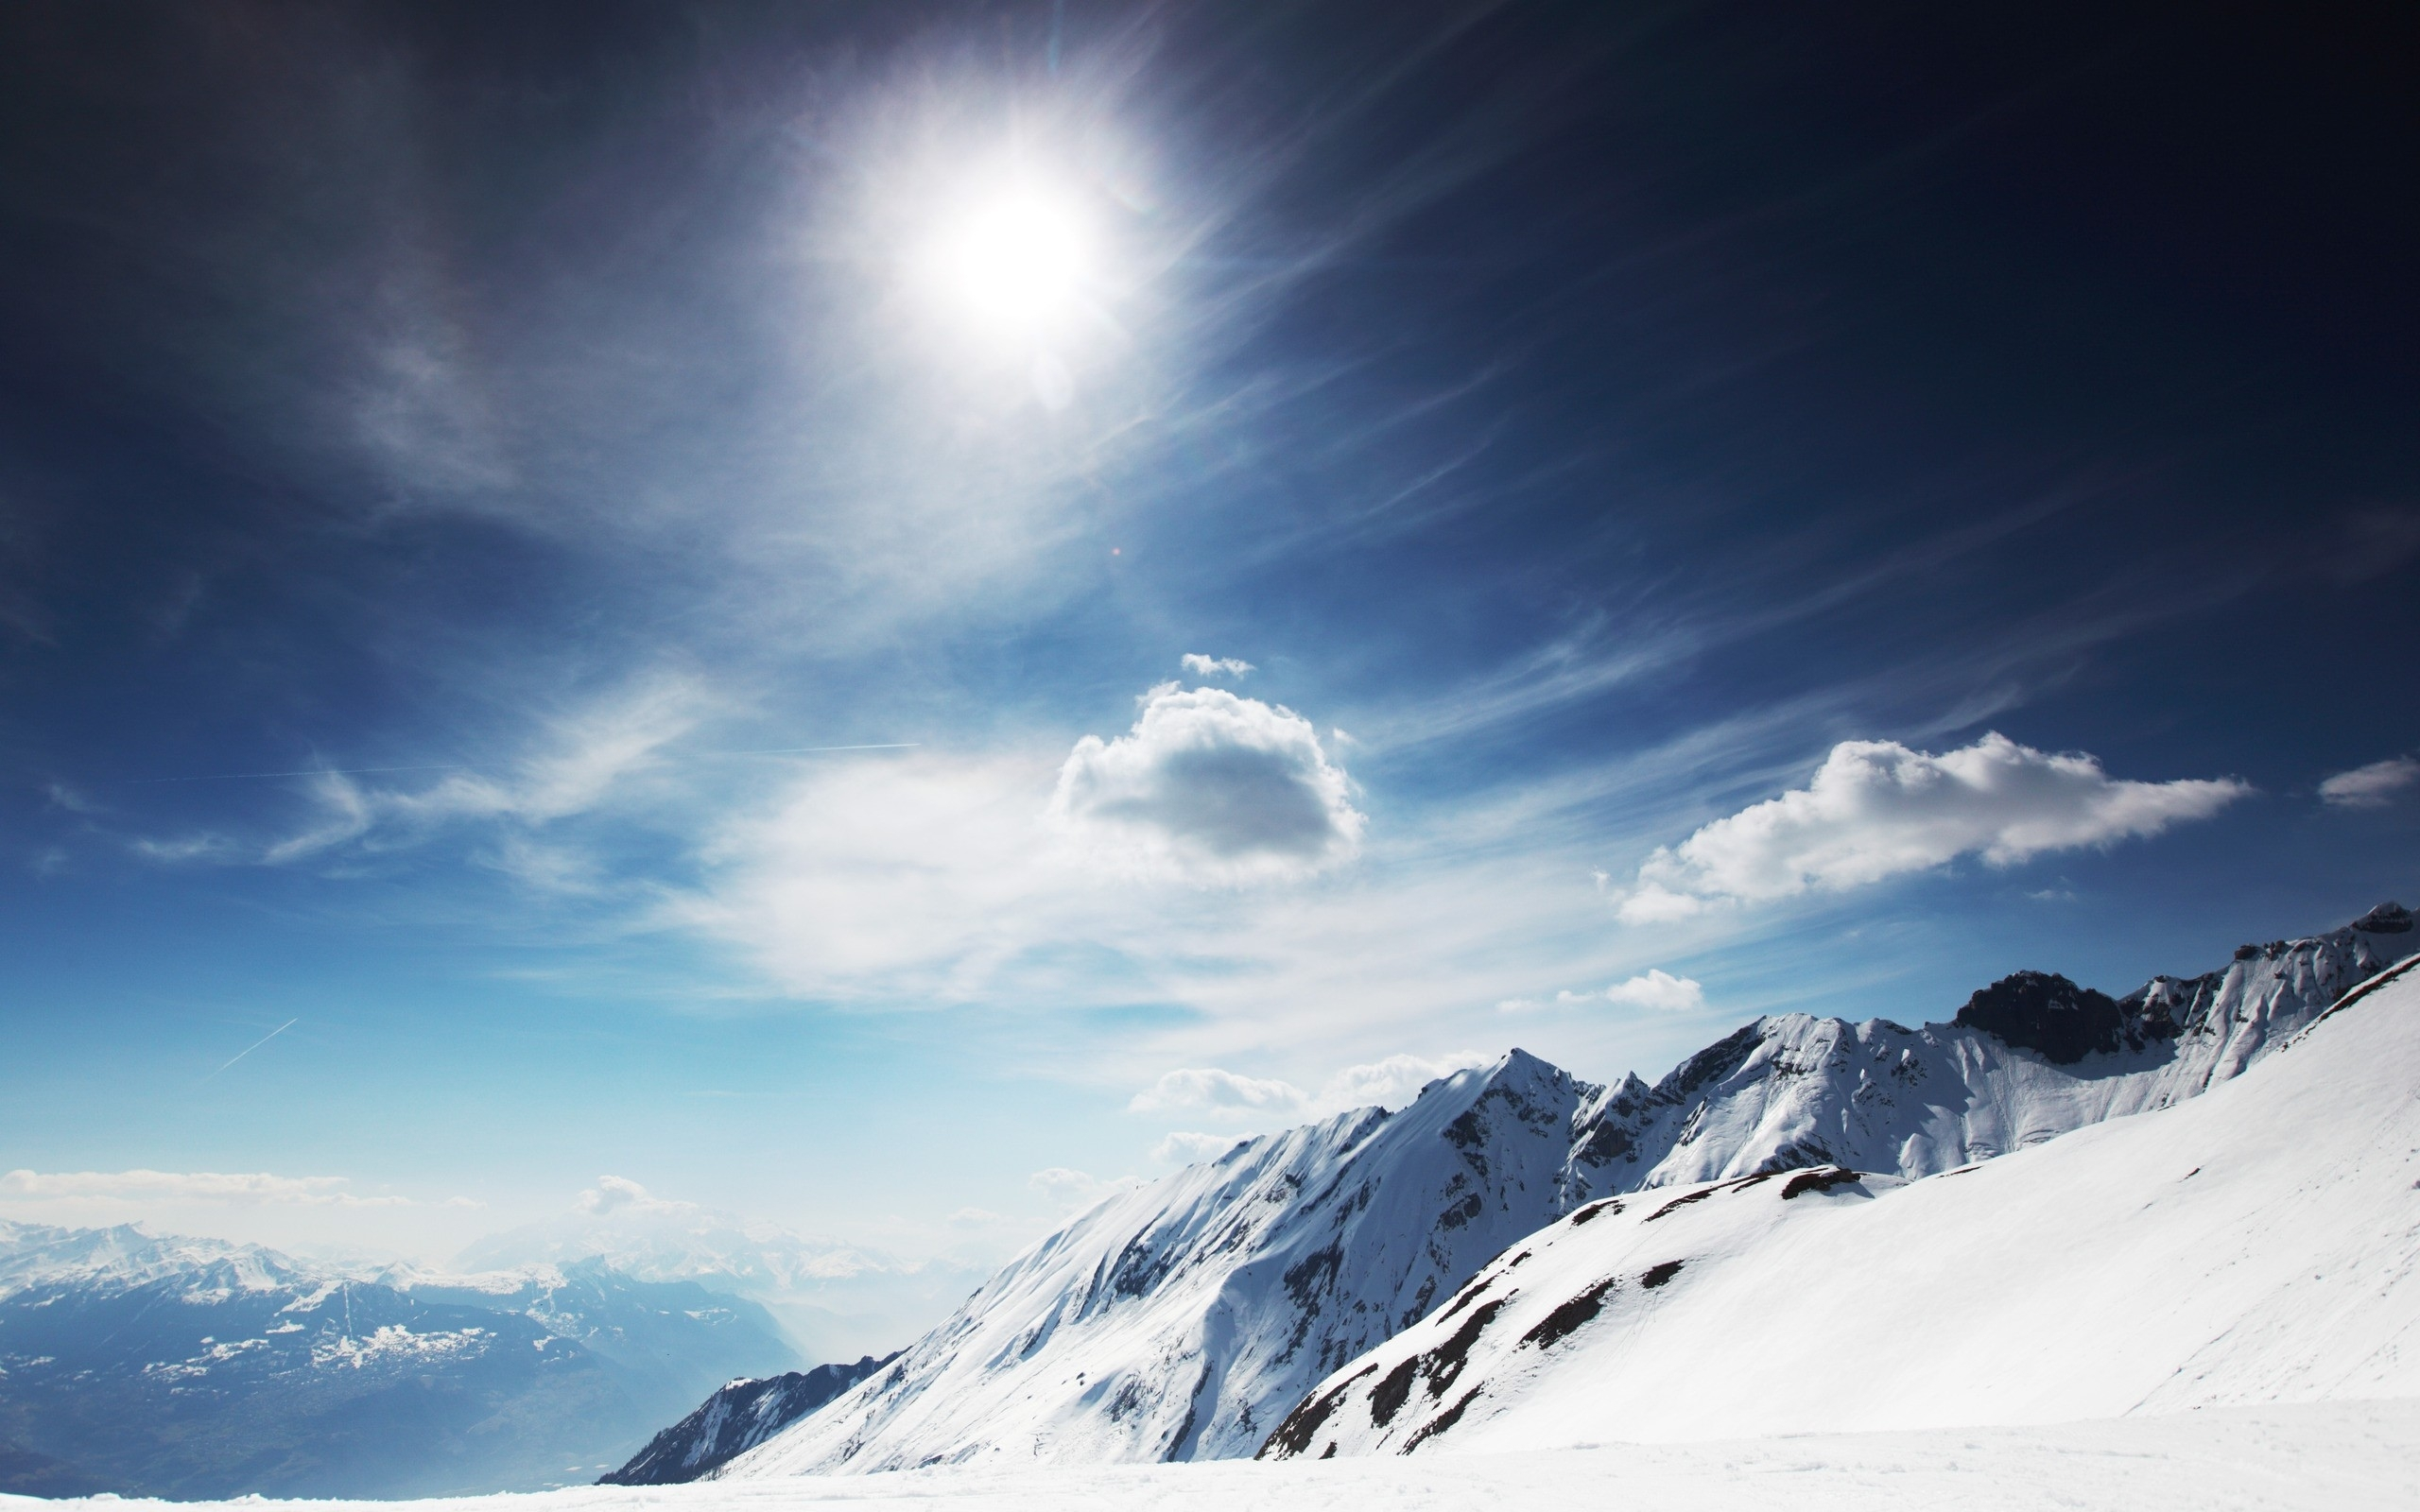 sunny snowy mountains wallpapers | hd wallpapers | id #9799